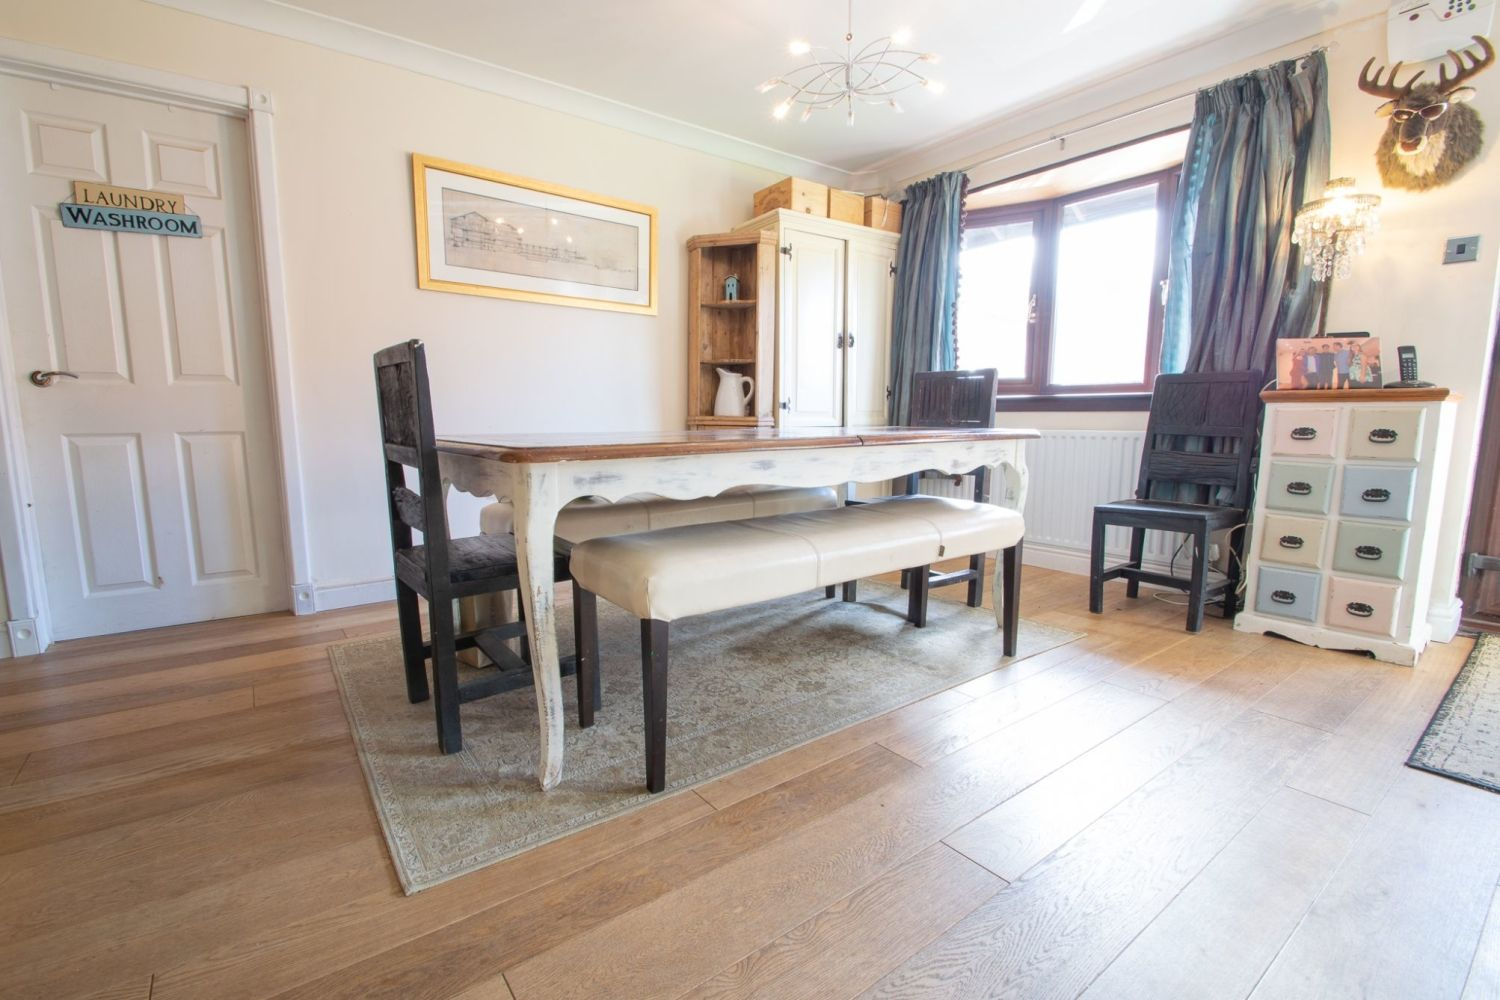 5 bed detached for sale in Melrose Avenue, Oldswinford, Stourbridge  - Property Image 2